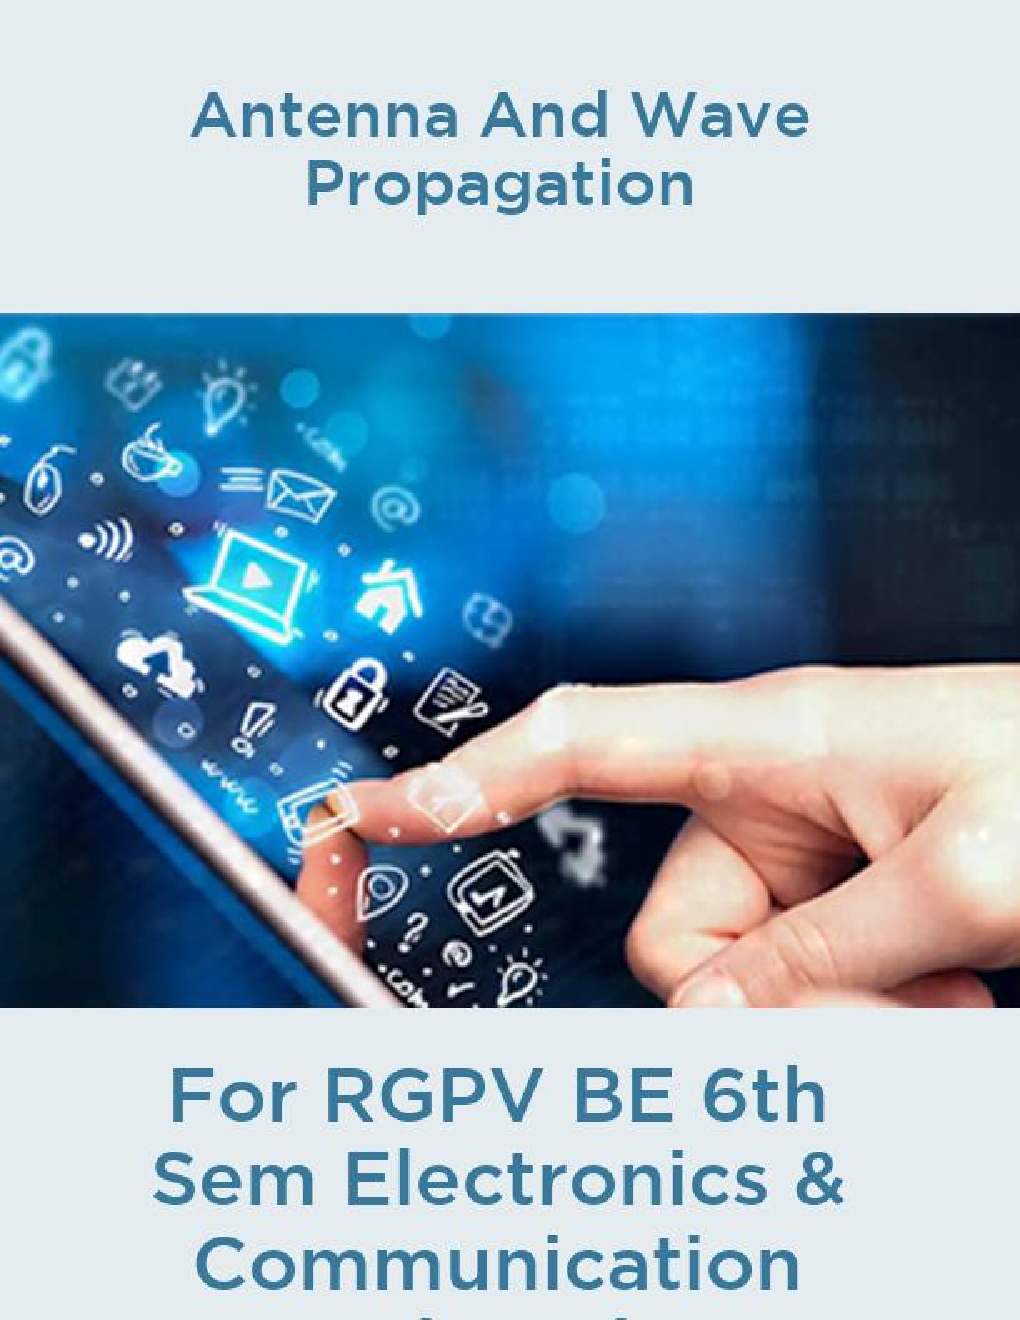 Antenna And Wave Propagation For RGPV BE 6th Sem Electronics & Communication Engineering - Page 1